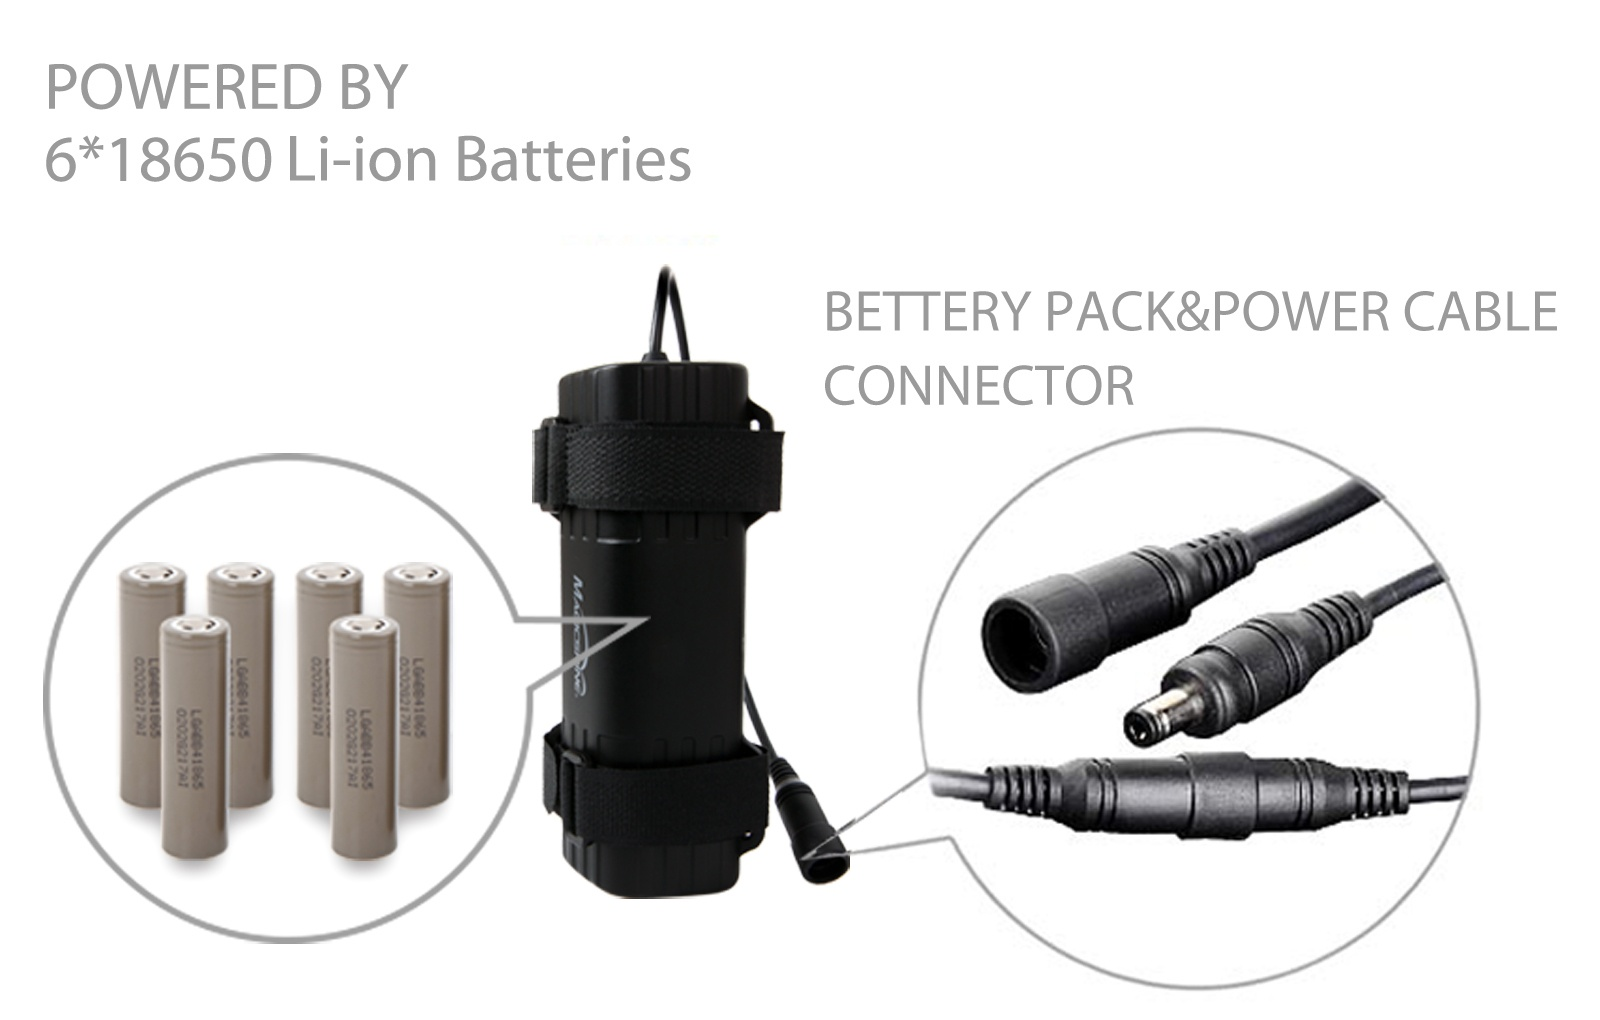 Round connector Magicshine MJ-6102 Li-ion Rechargeable 7.4V 7.8Ah Battery Pack